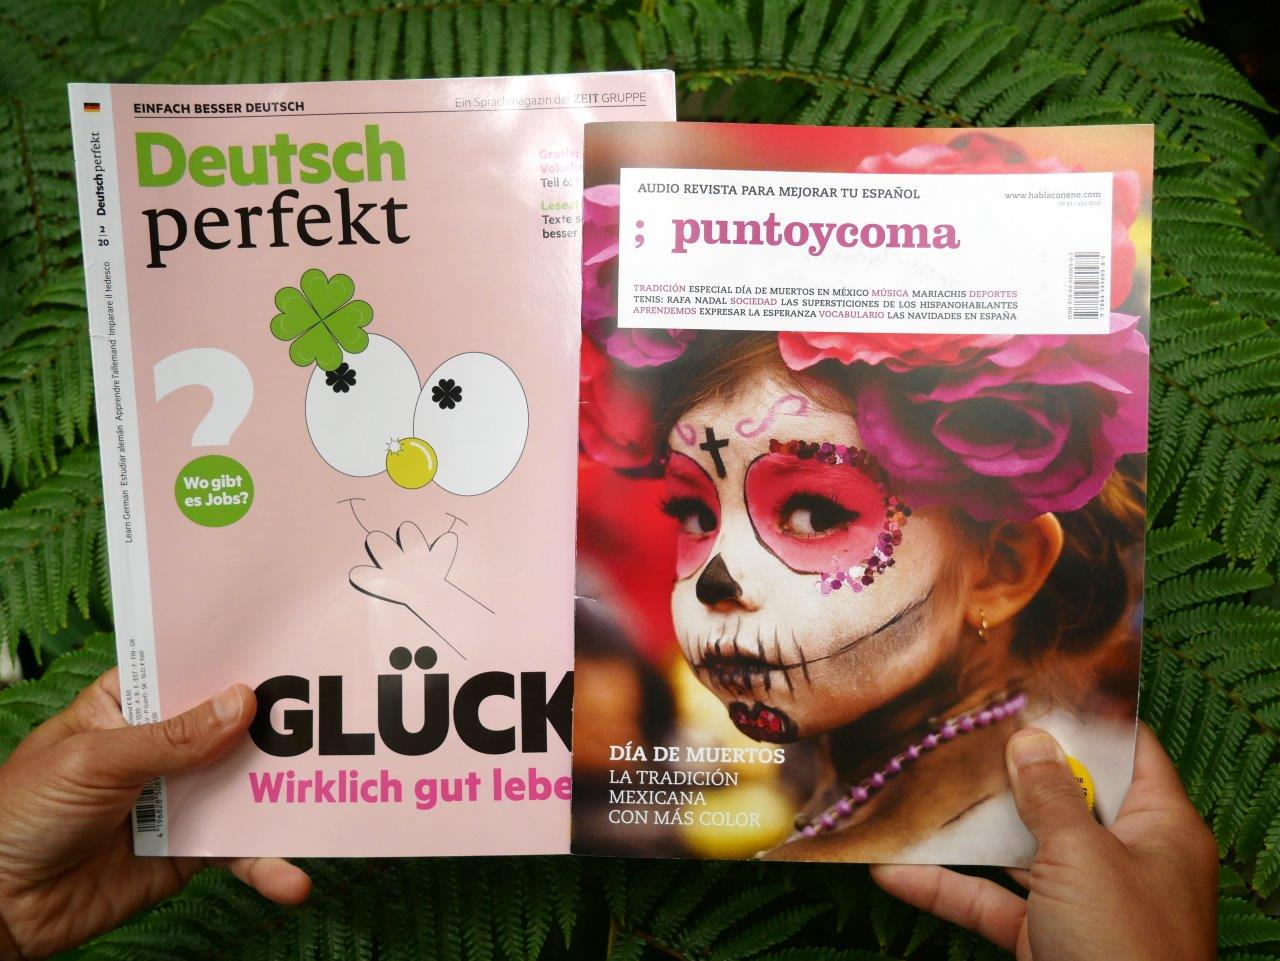 Deutsch Perfekt magazine for German learners and ; puntoycoma magazines for Spanish learners.